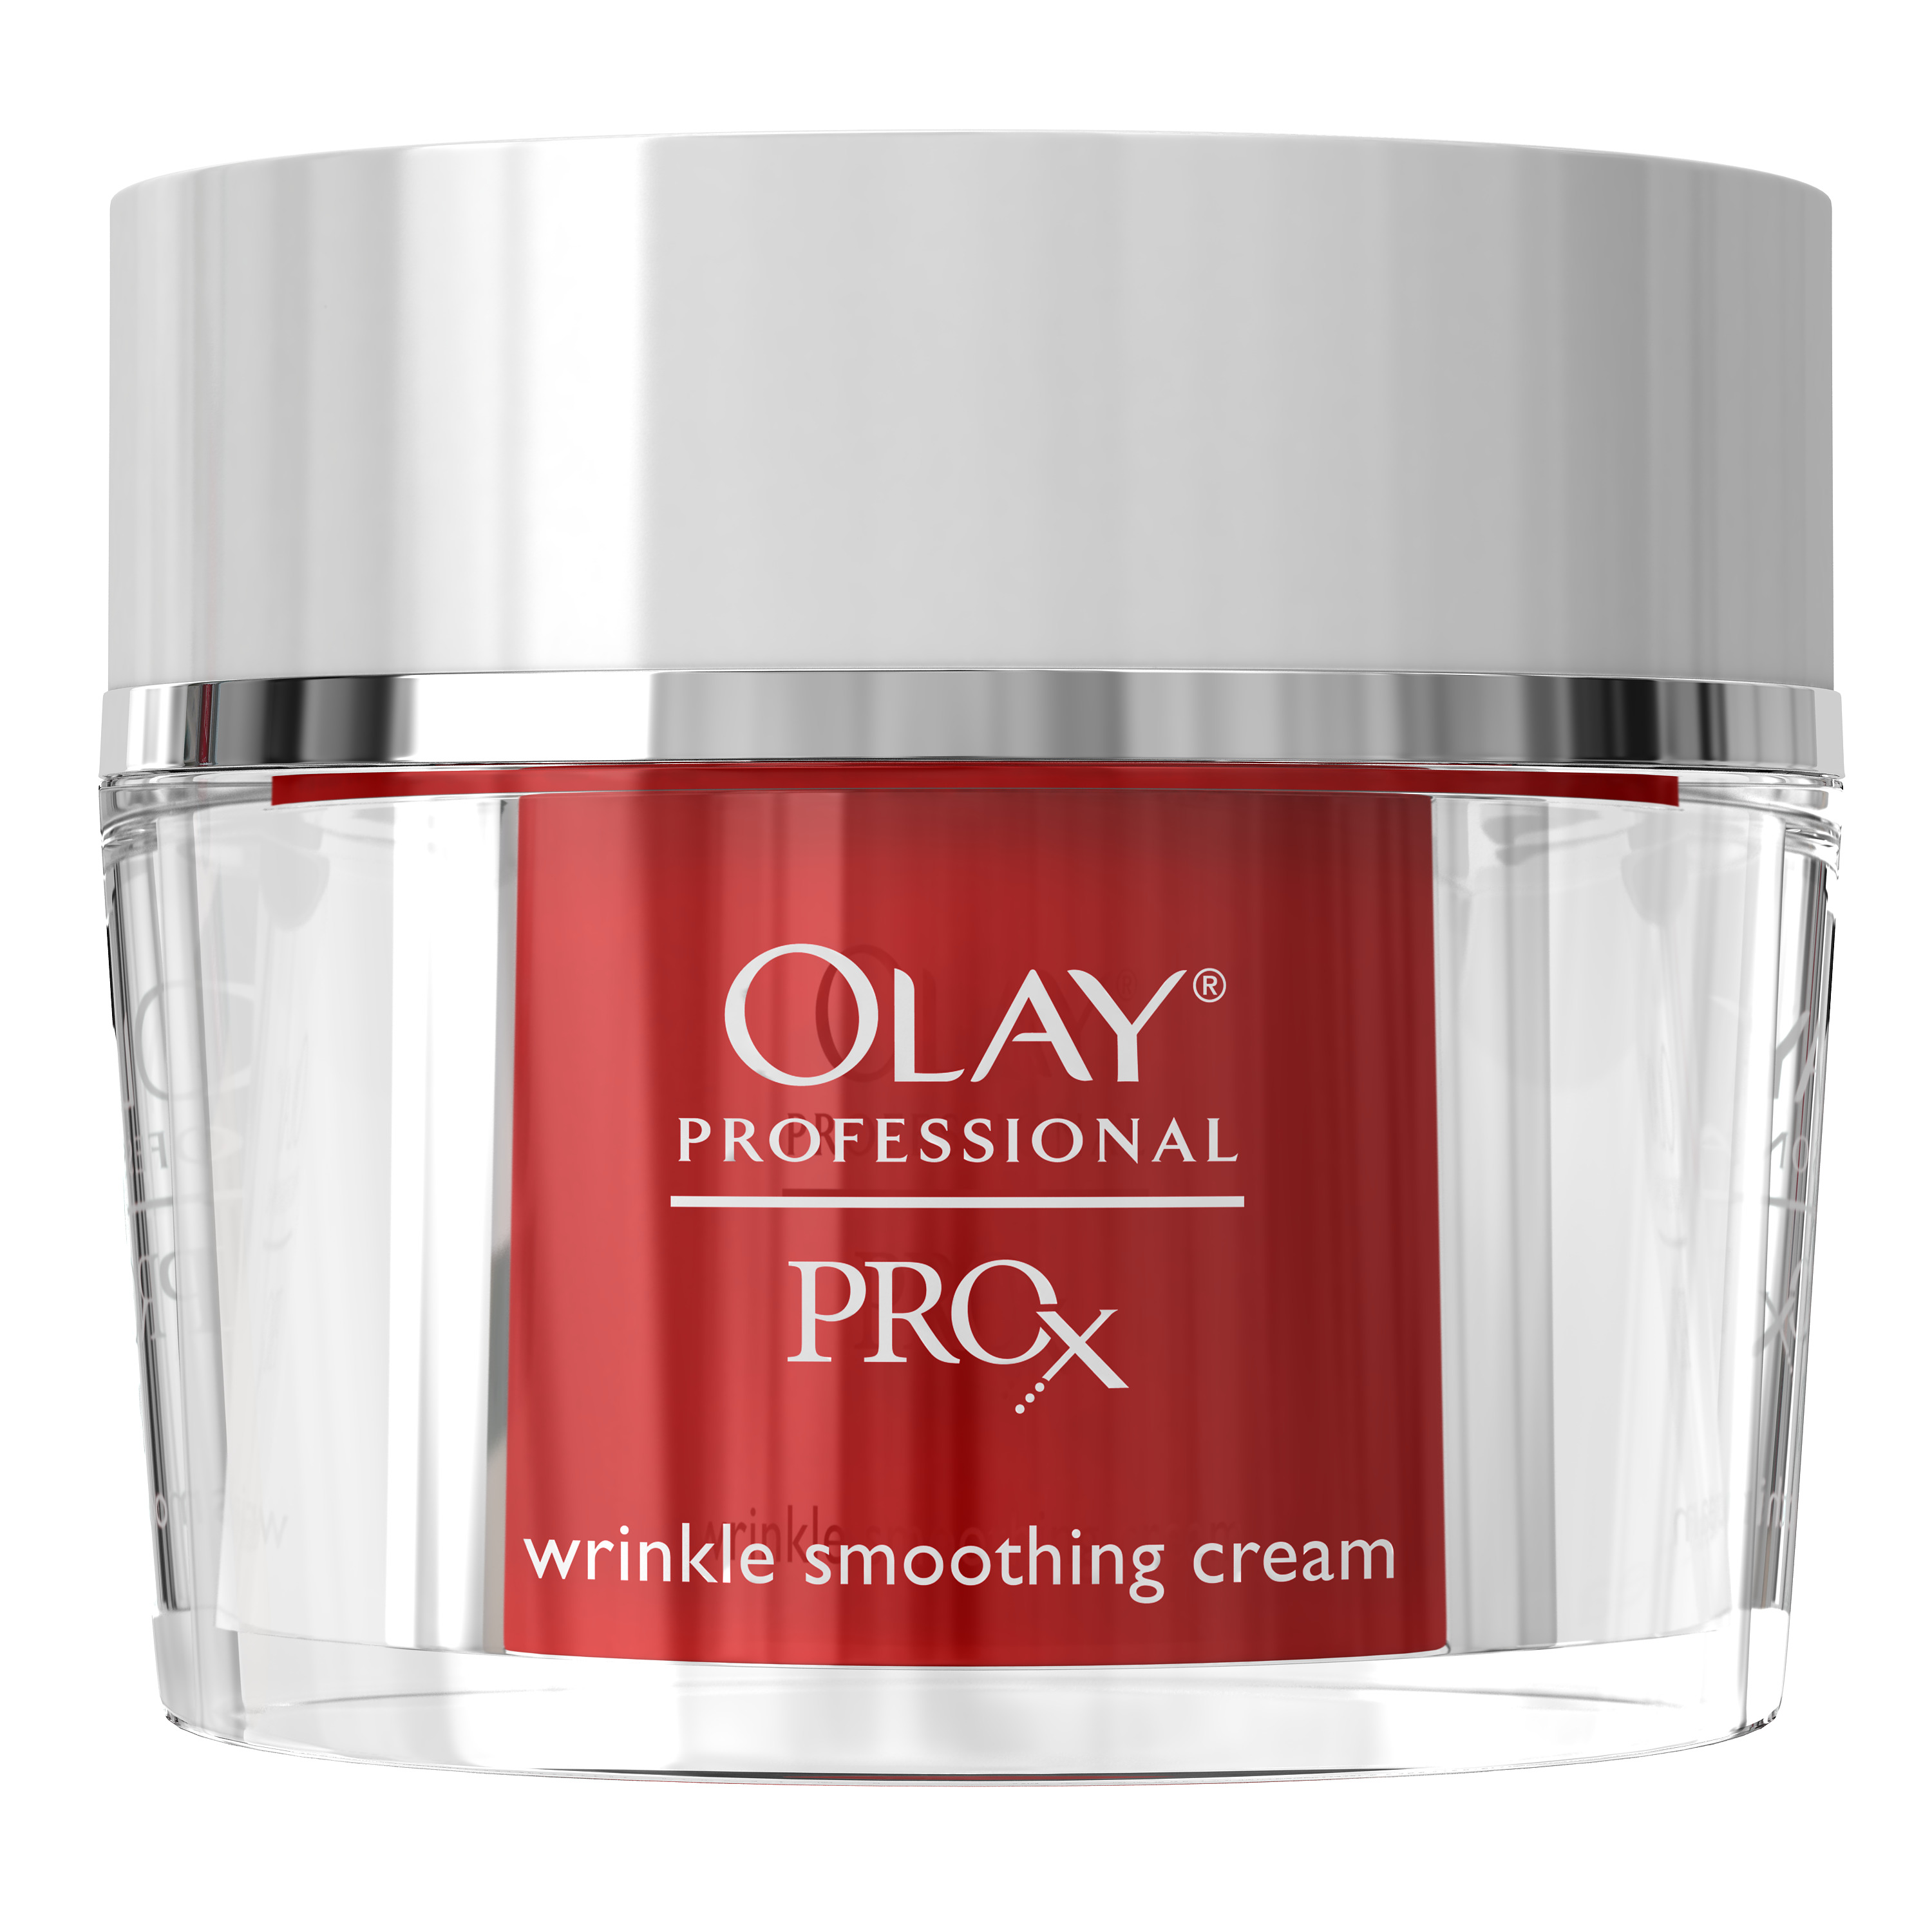 ProX by Olay Wrinkle Smoothing Anti Aging Cream Face Moisturizer 1.7 oz